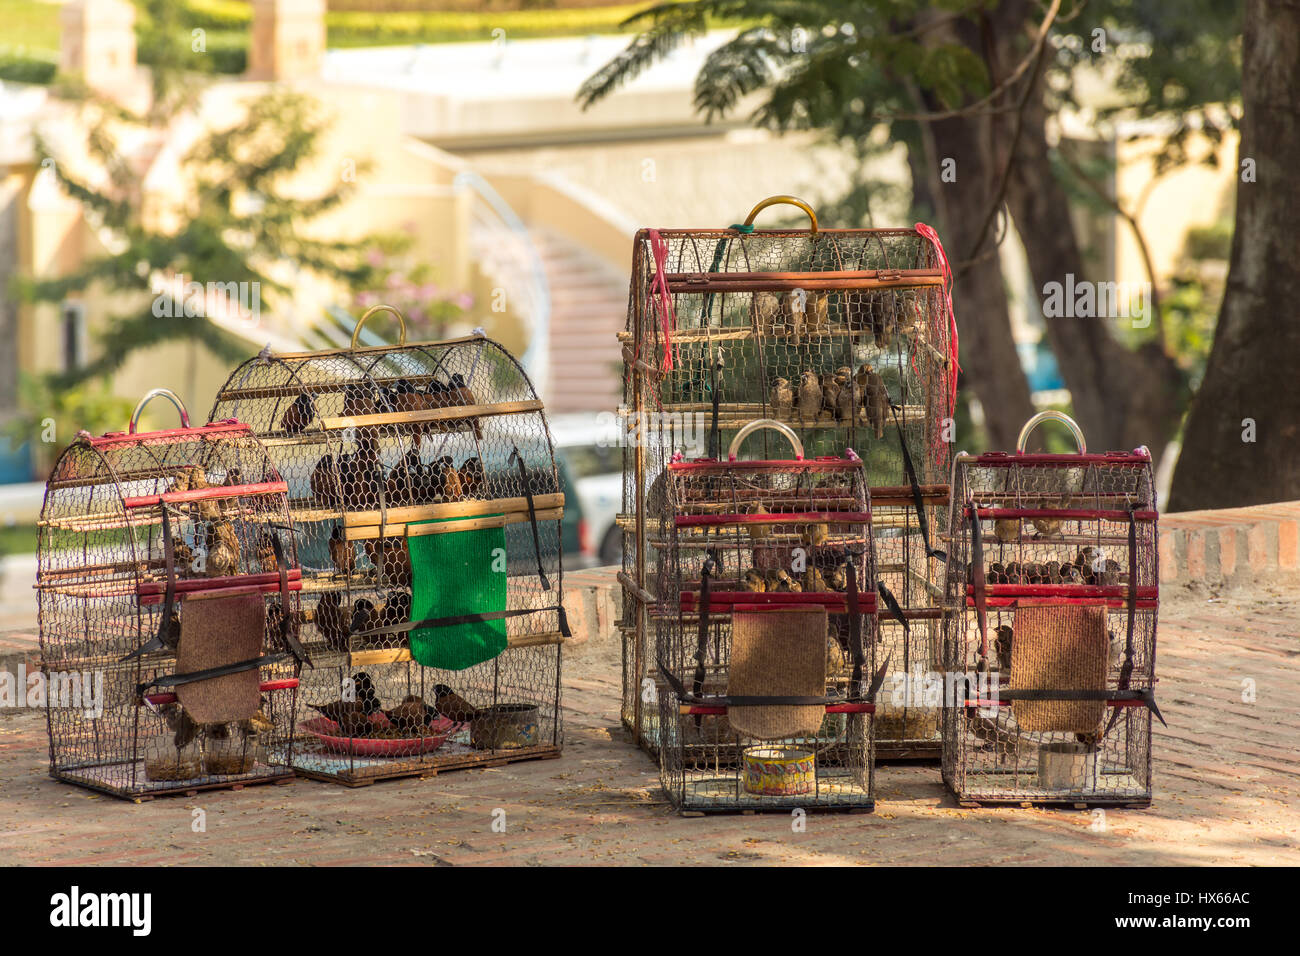 5 bird cages full of small birds for sale in the shade near a temple in Cambodia. - Stock Image